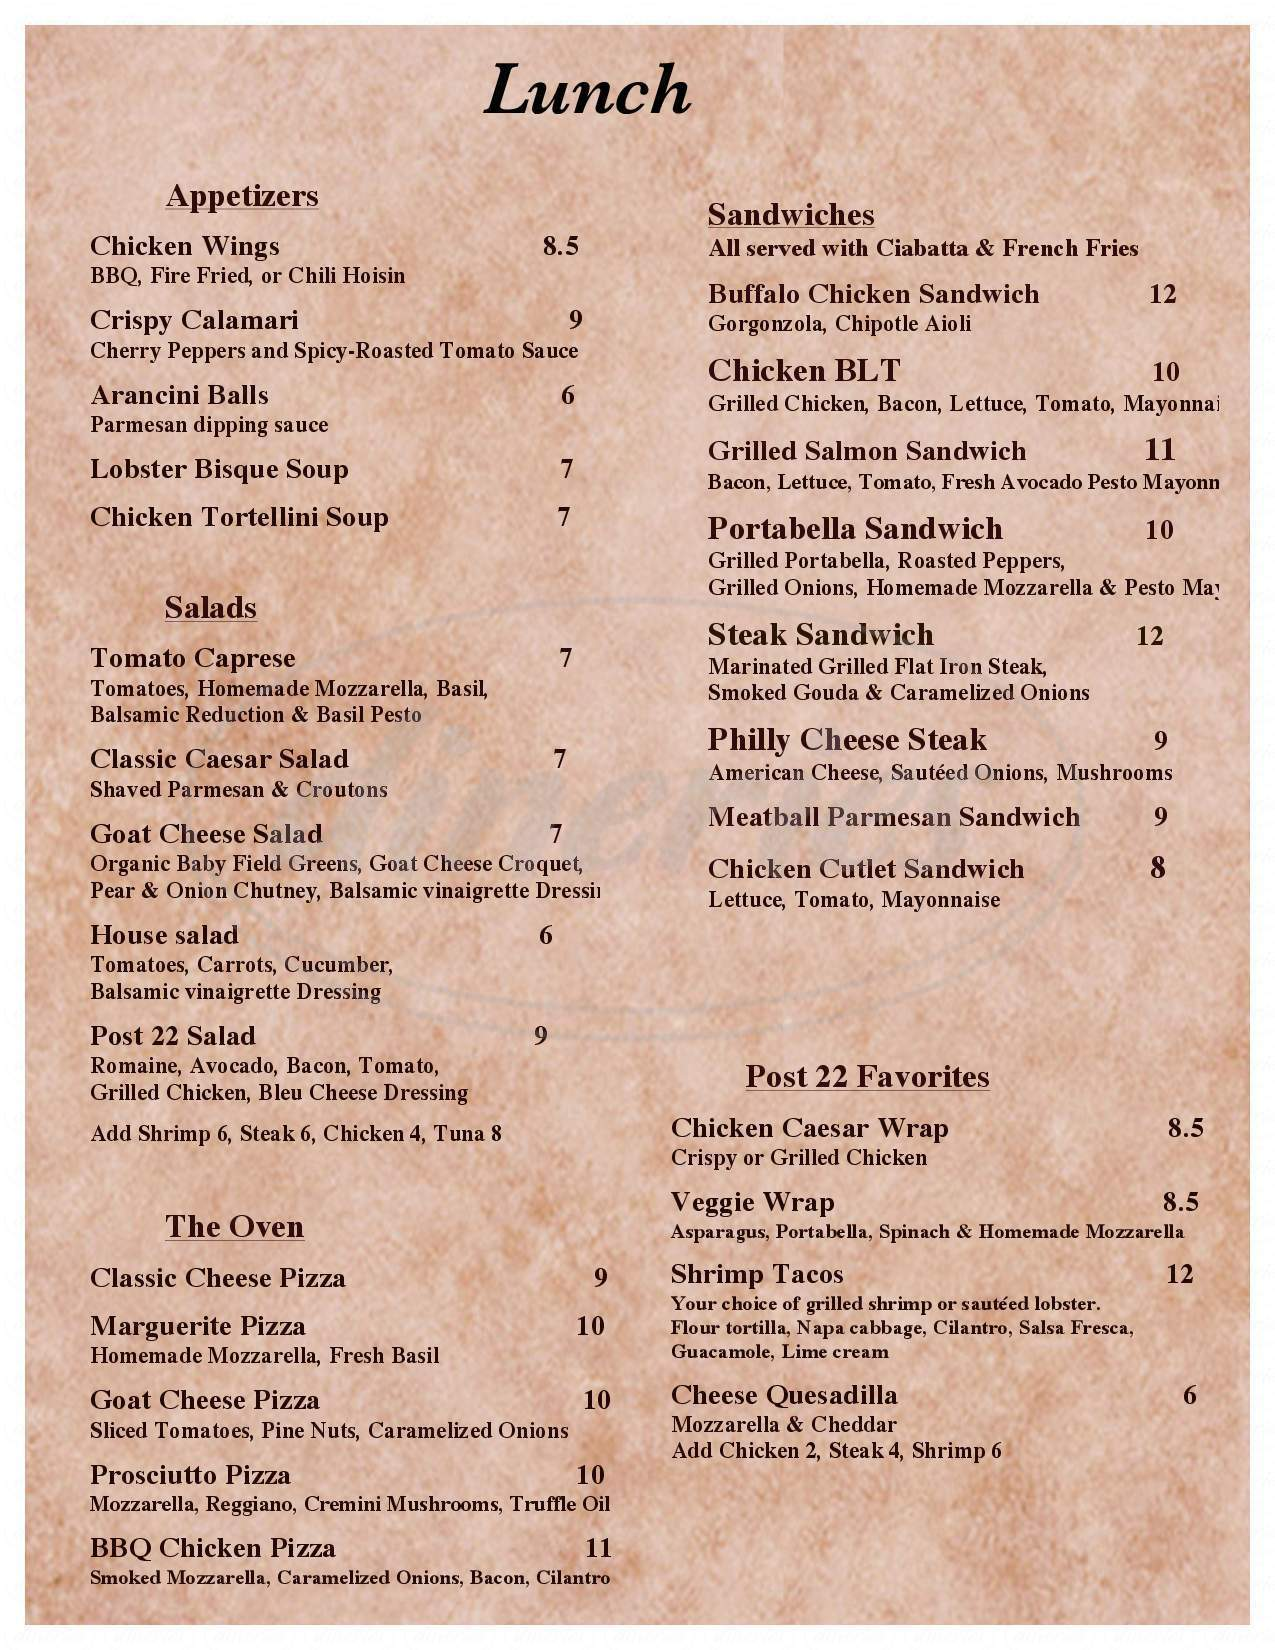 menu for Post 22